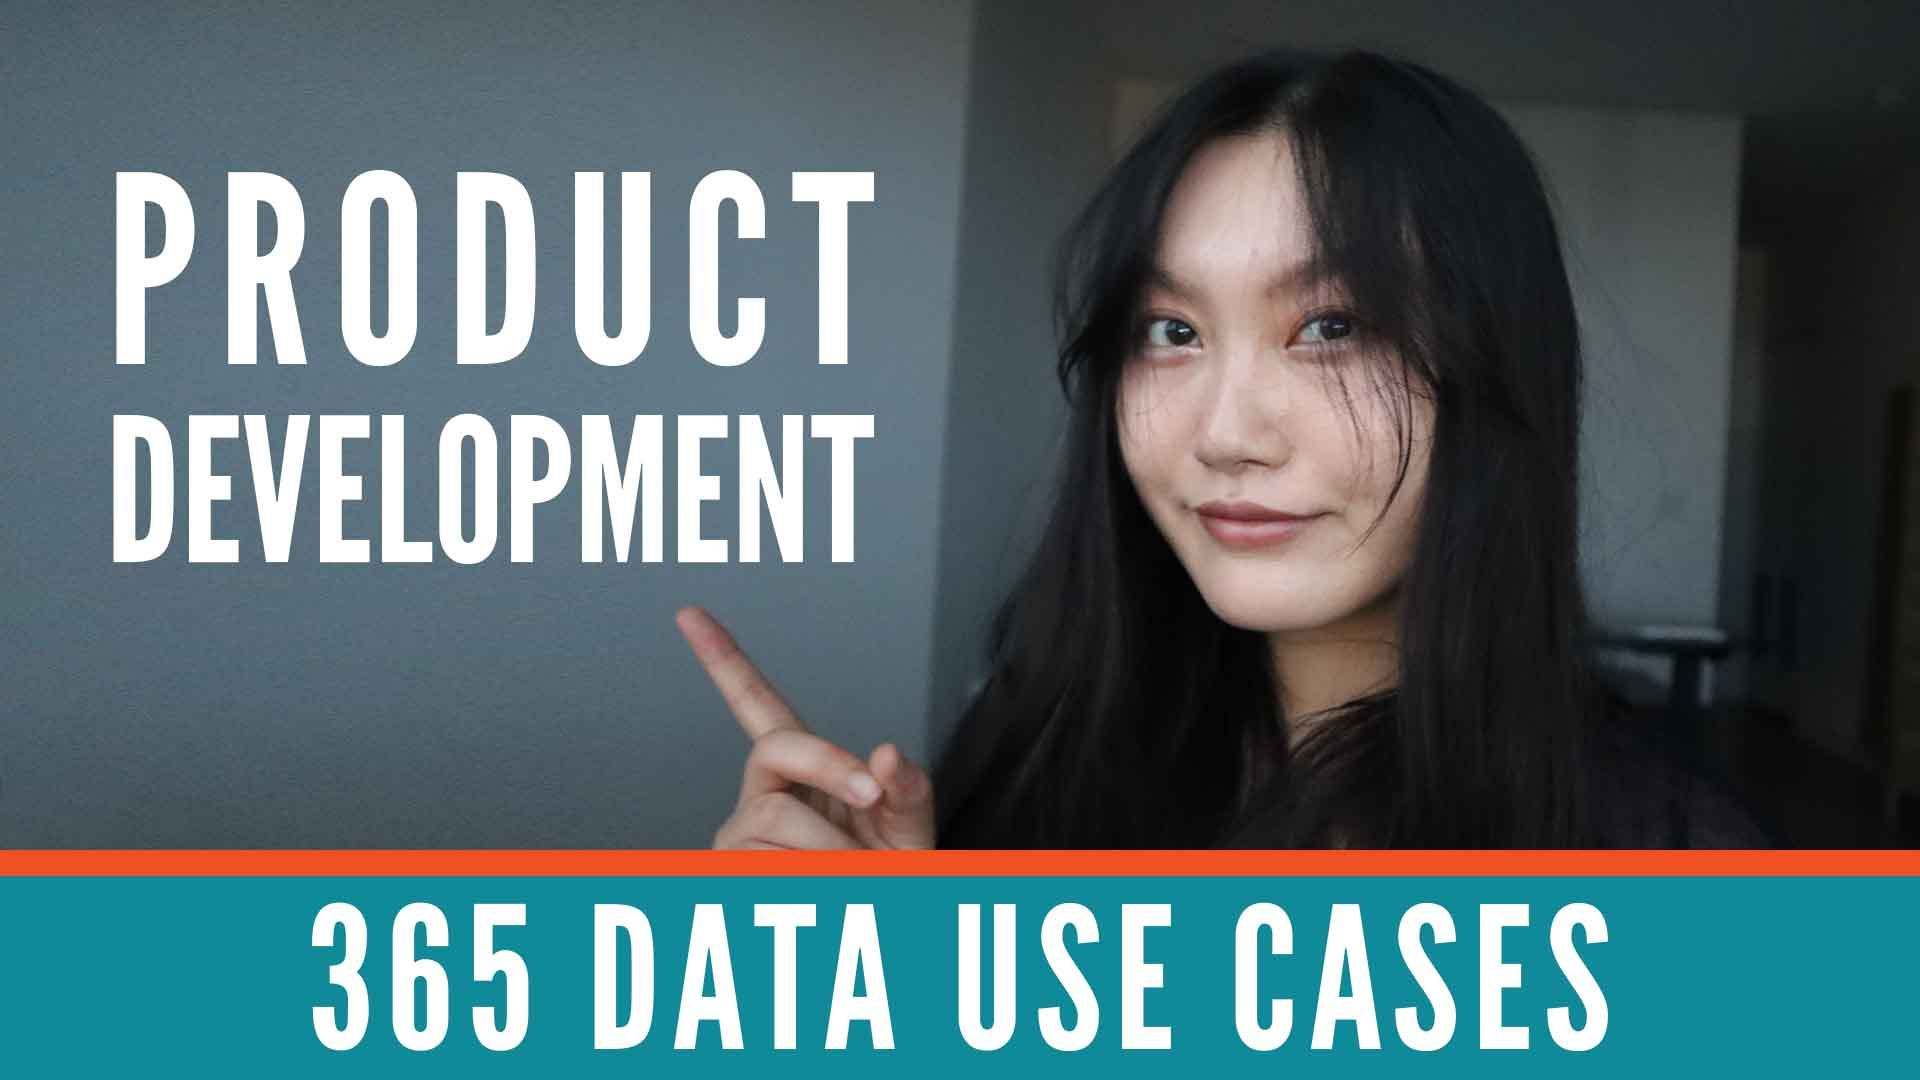 Data Use Cases: Product development with Tina Huang